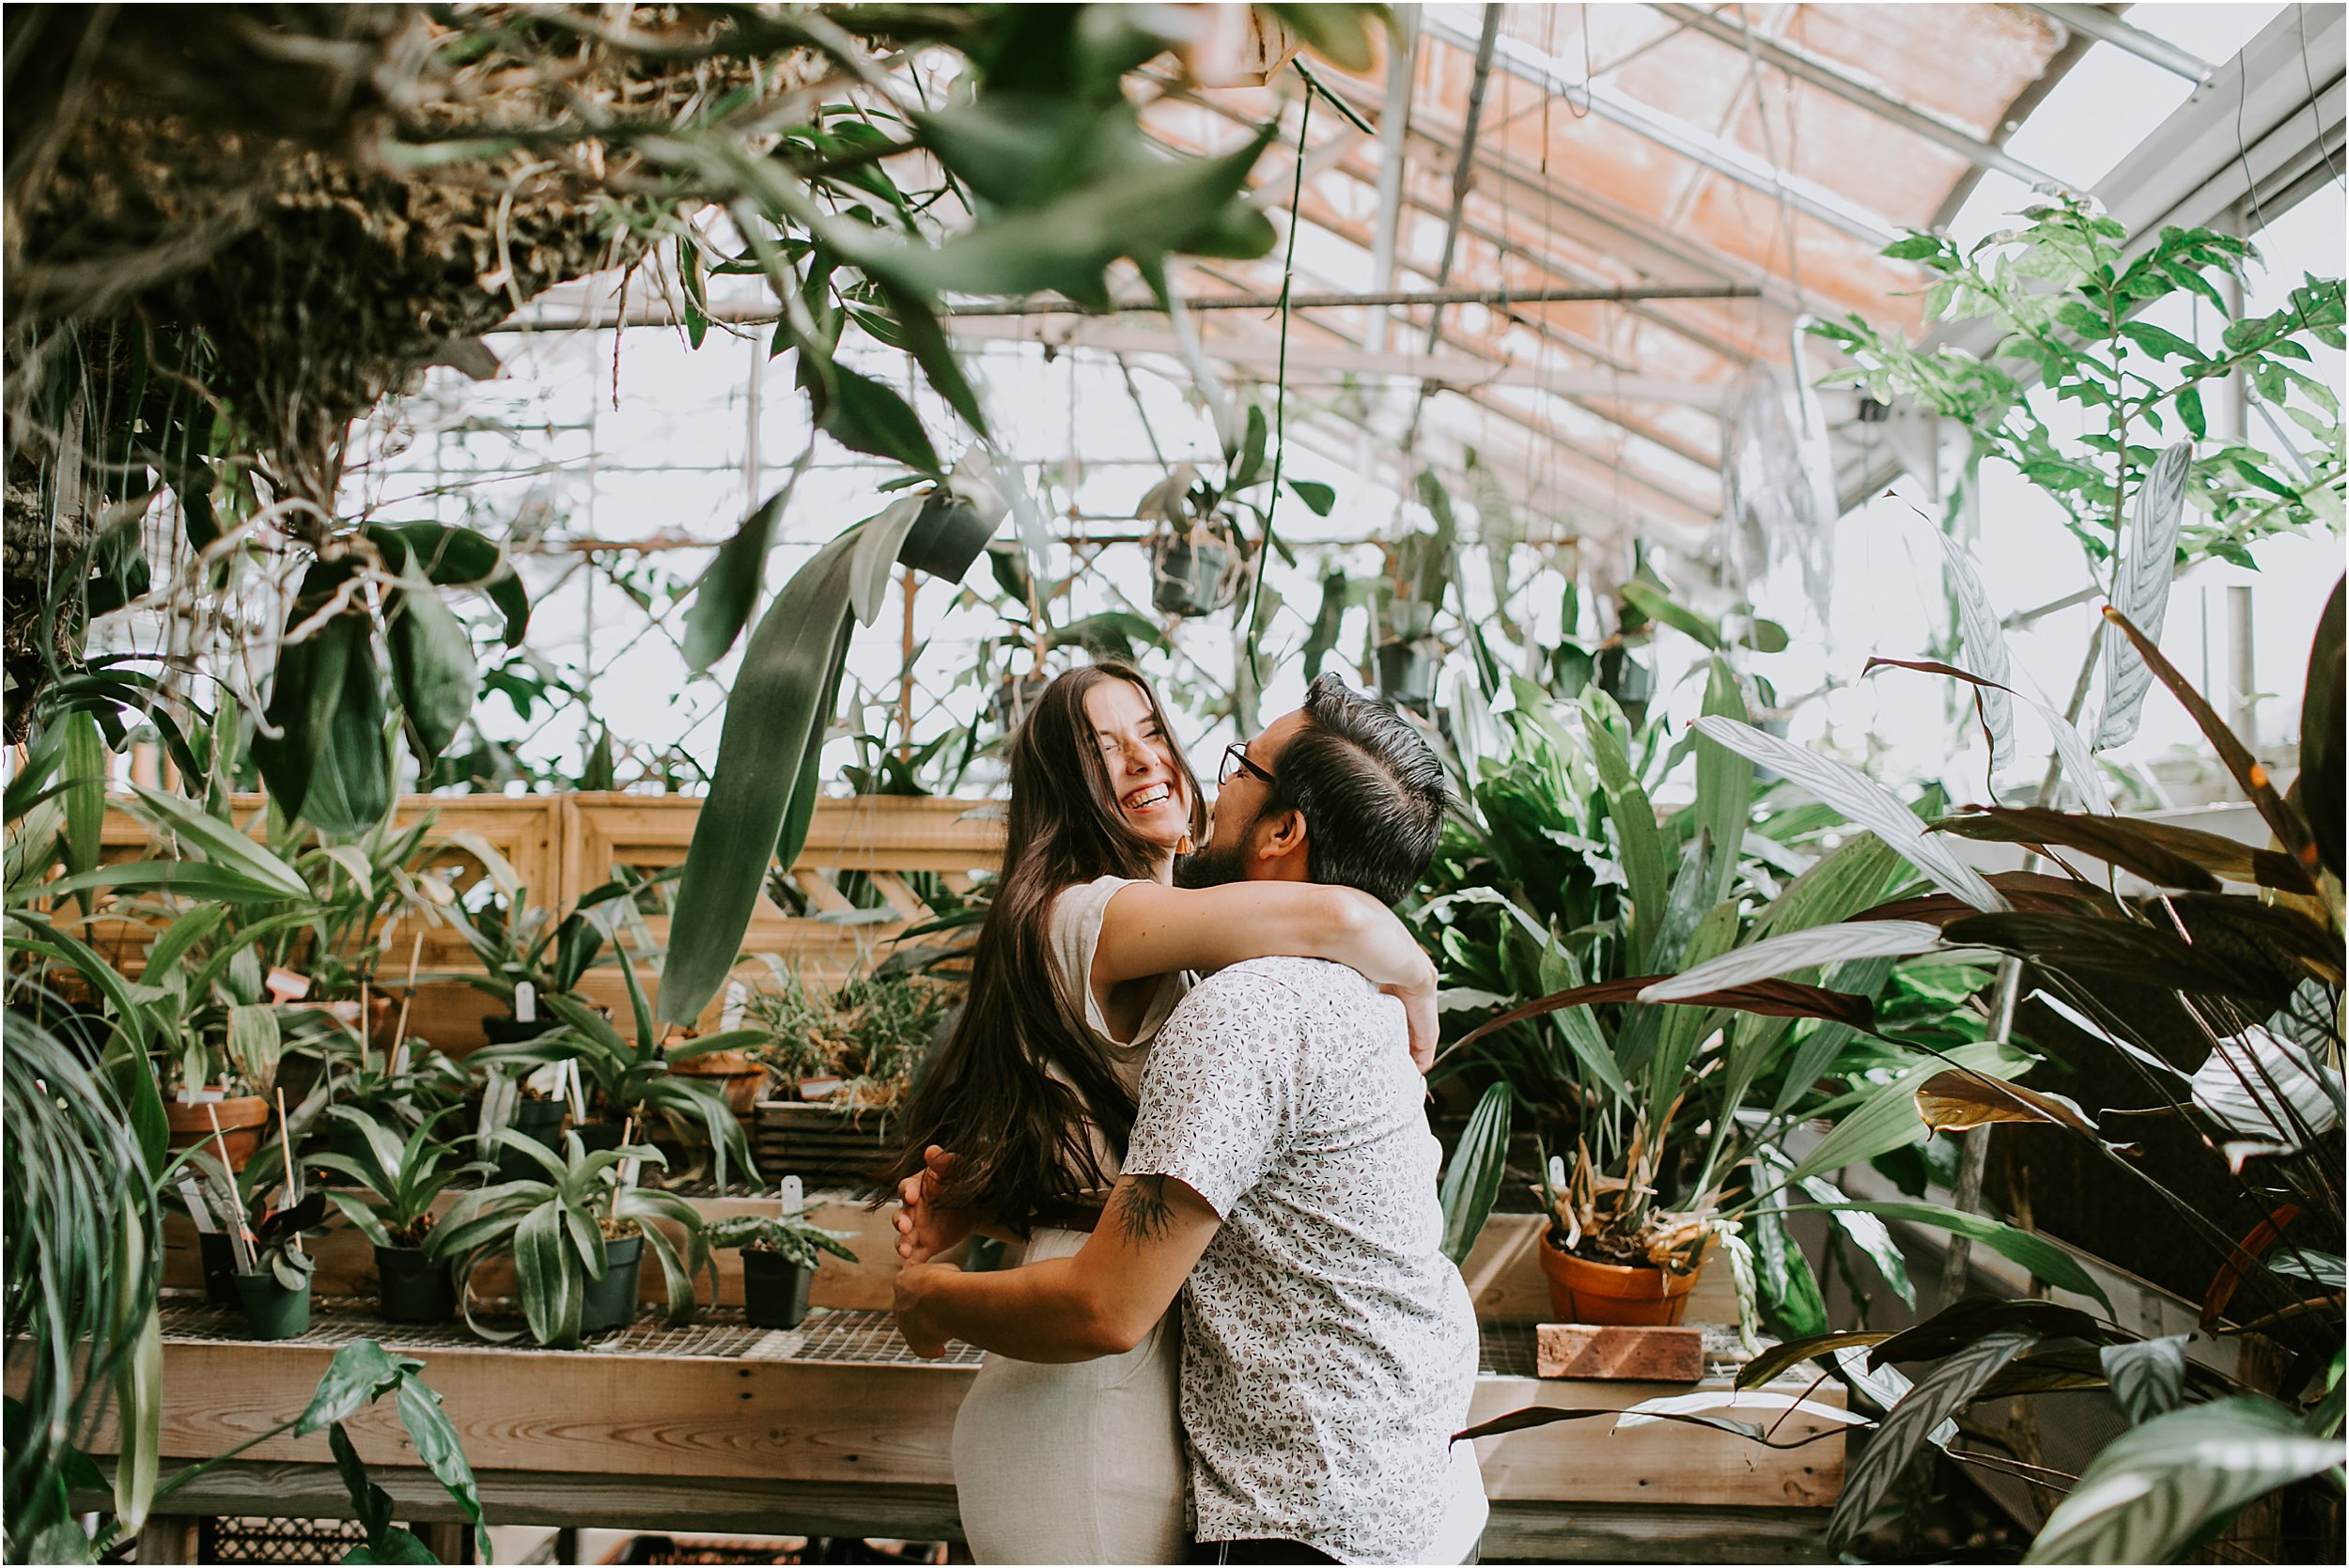 A couple is in a greenhouse surrounded by plants. They are embracing in a hug and she is laughing.